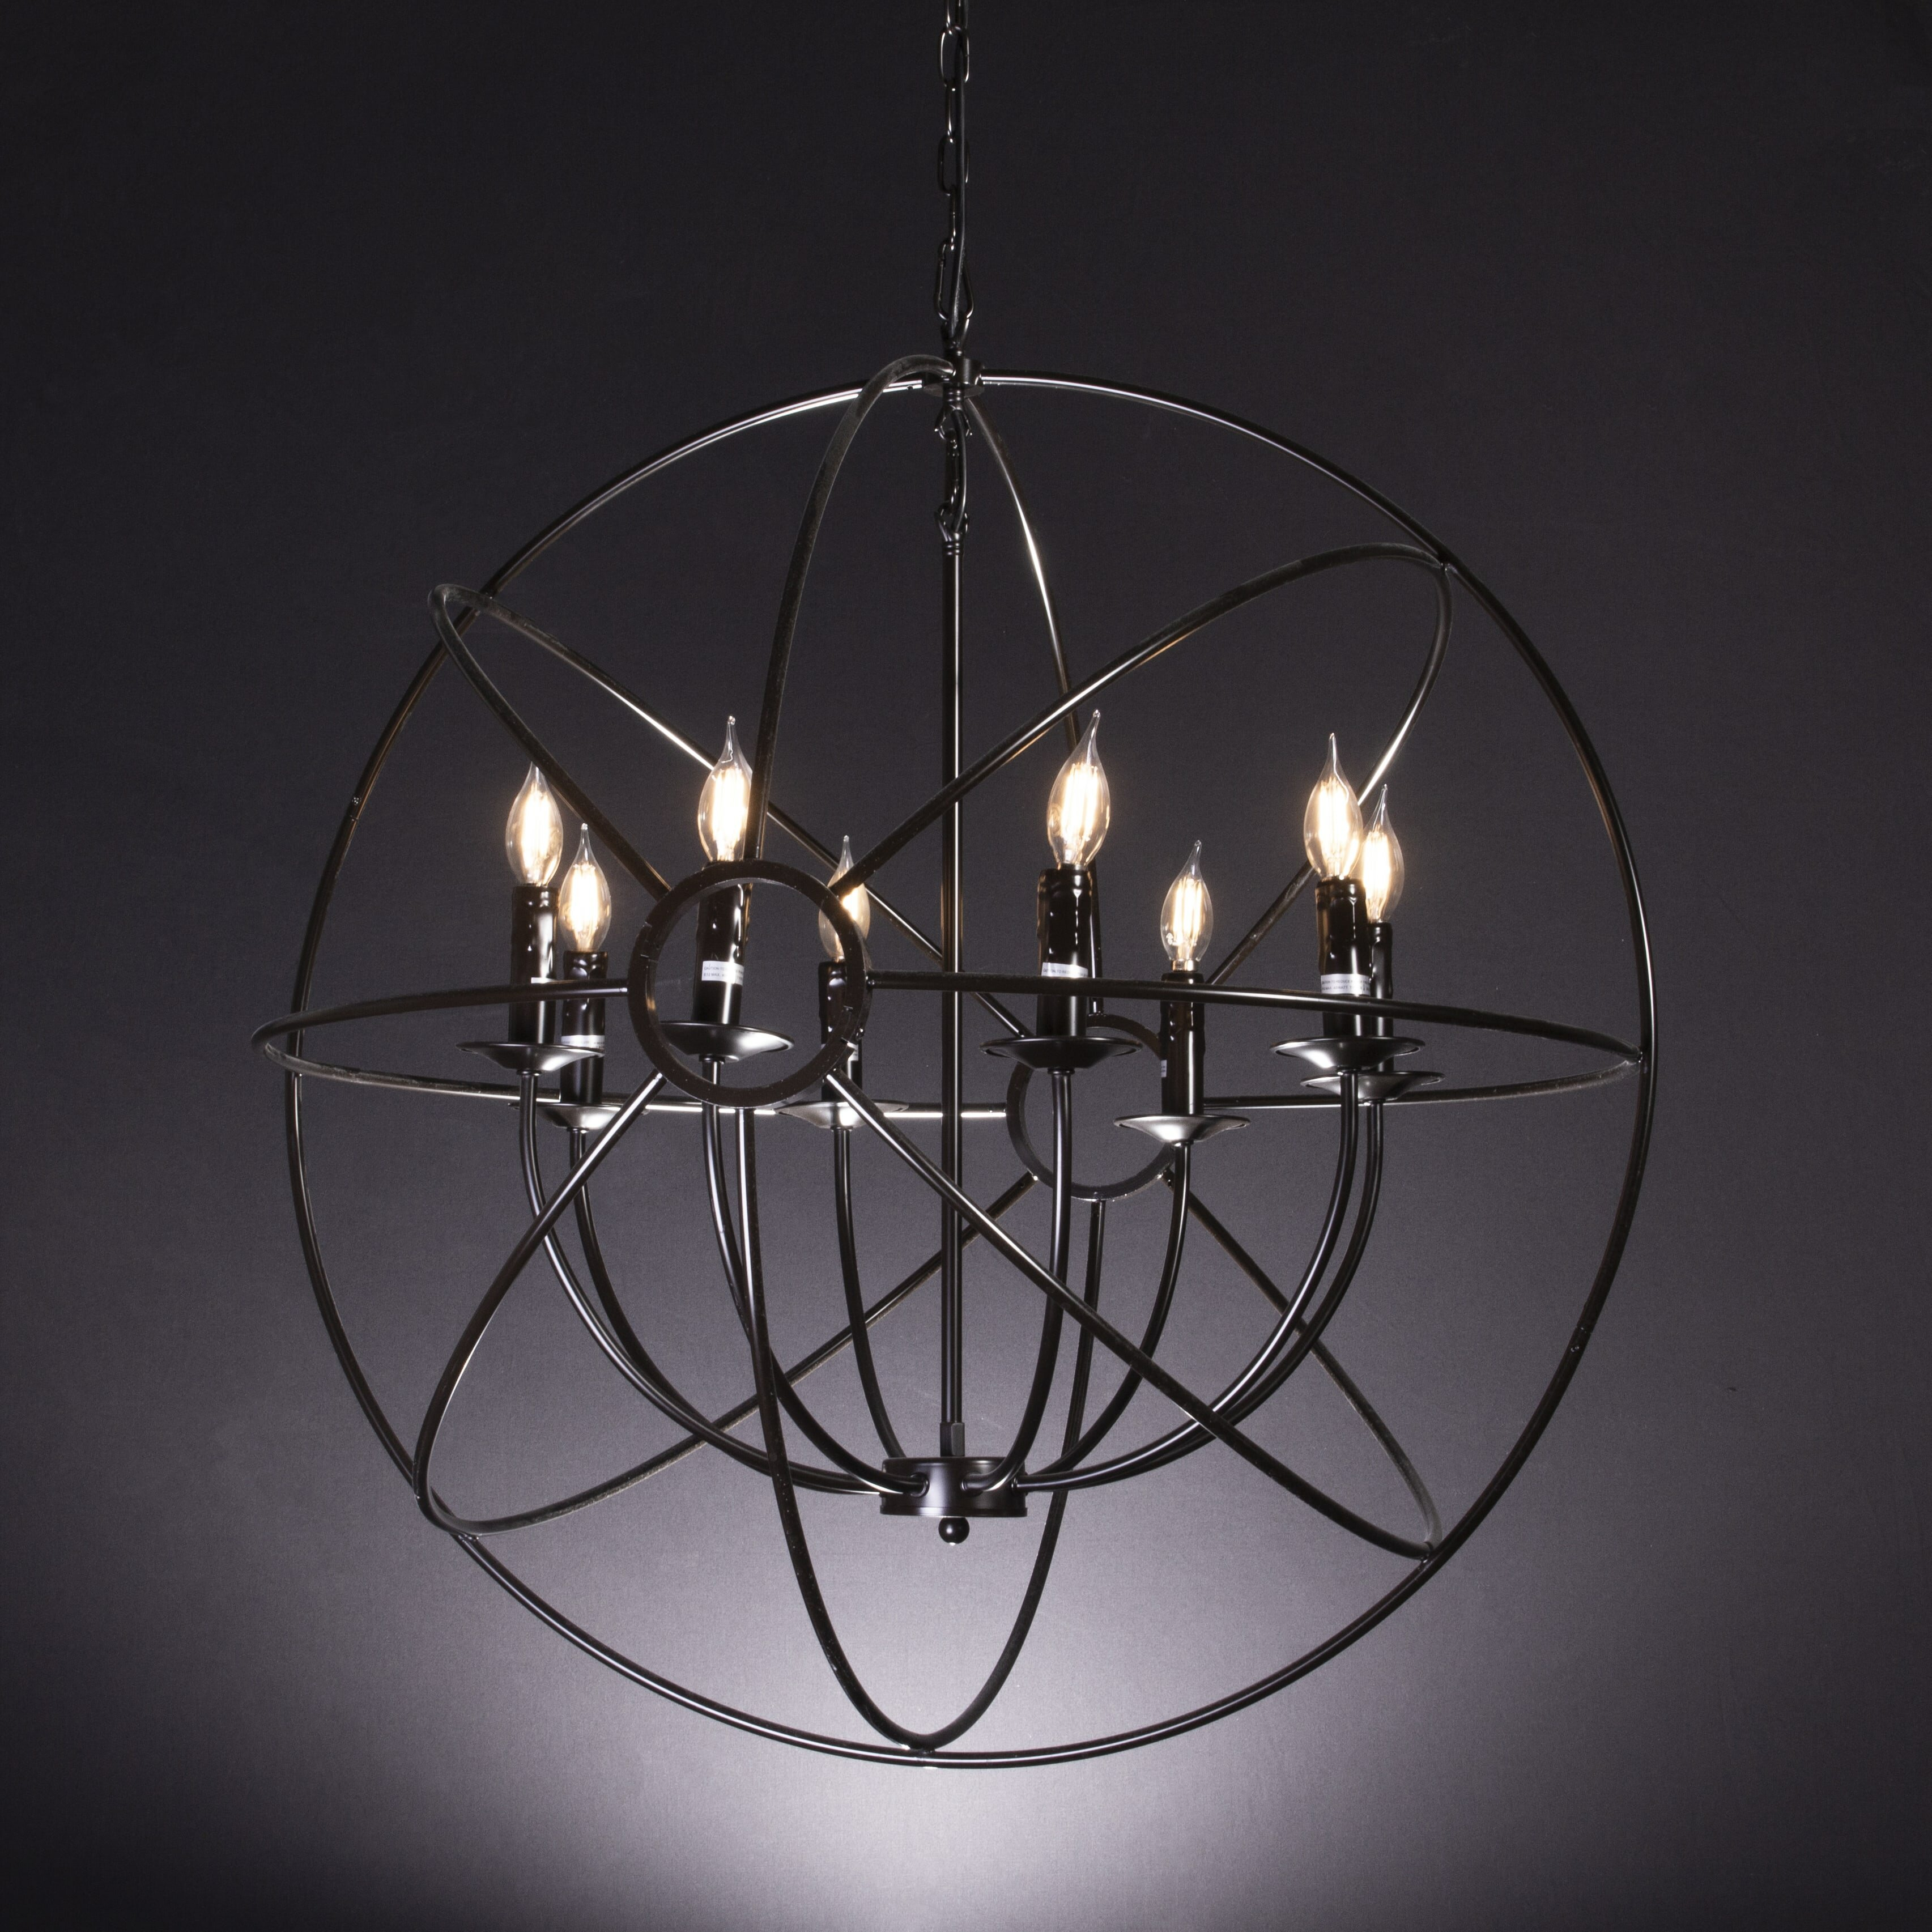 8 Light Candle Style Globe Chandelier